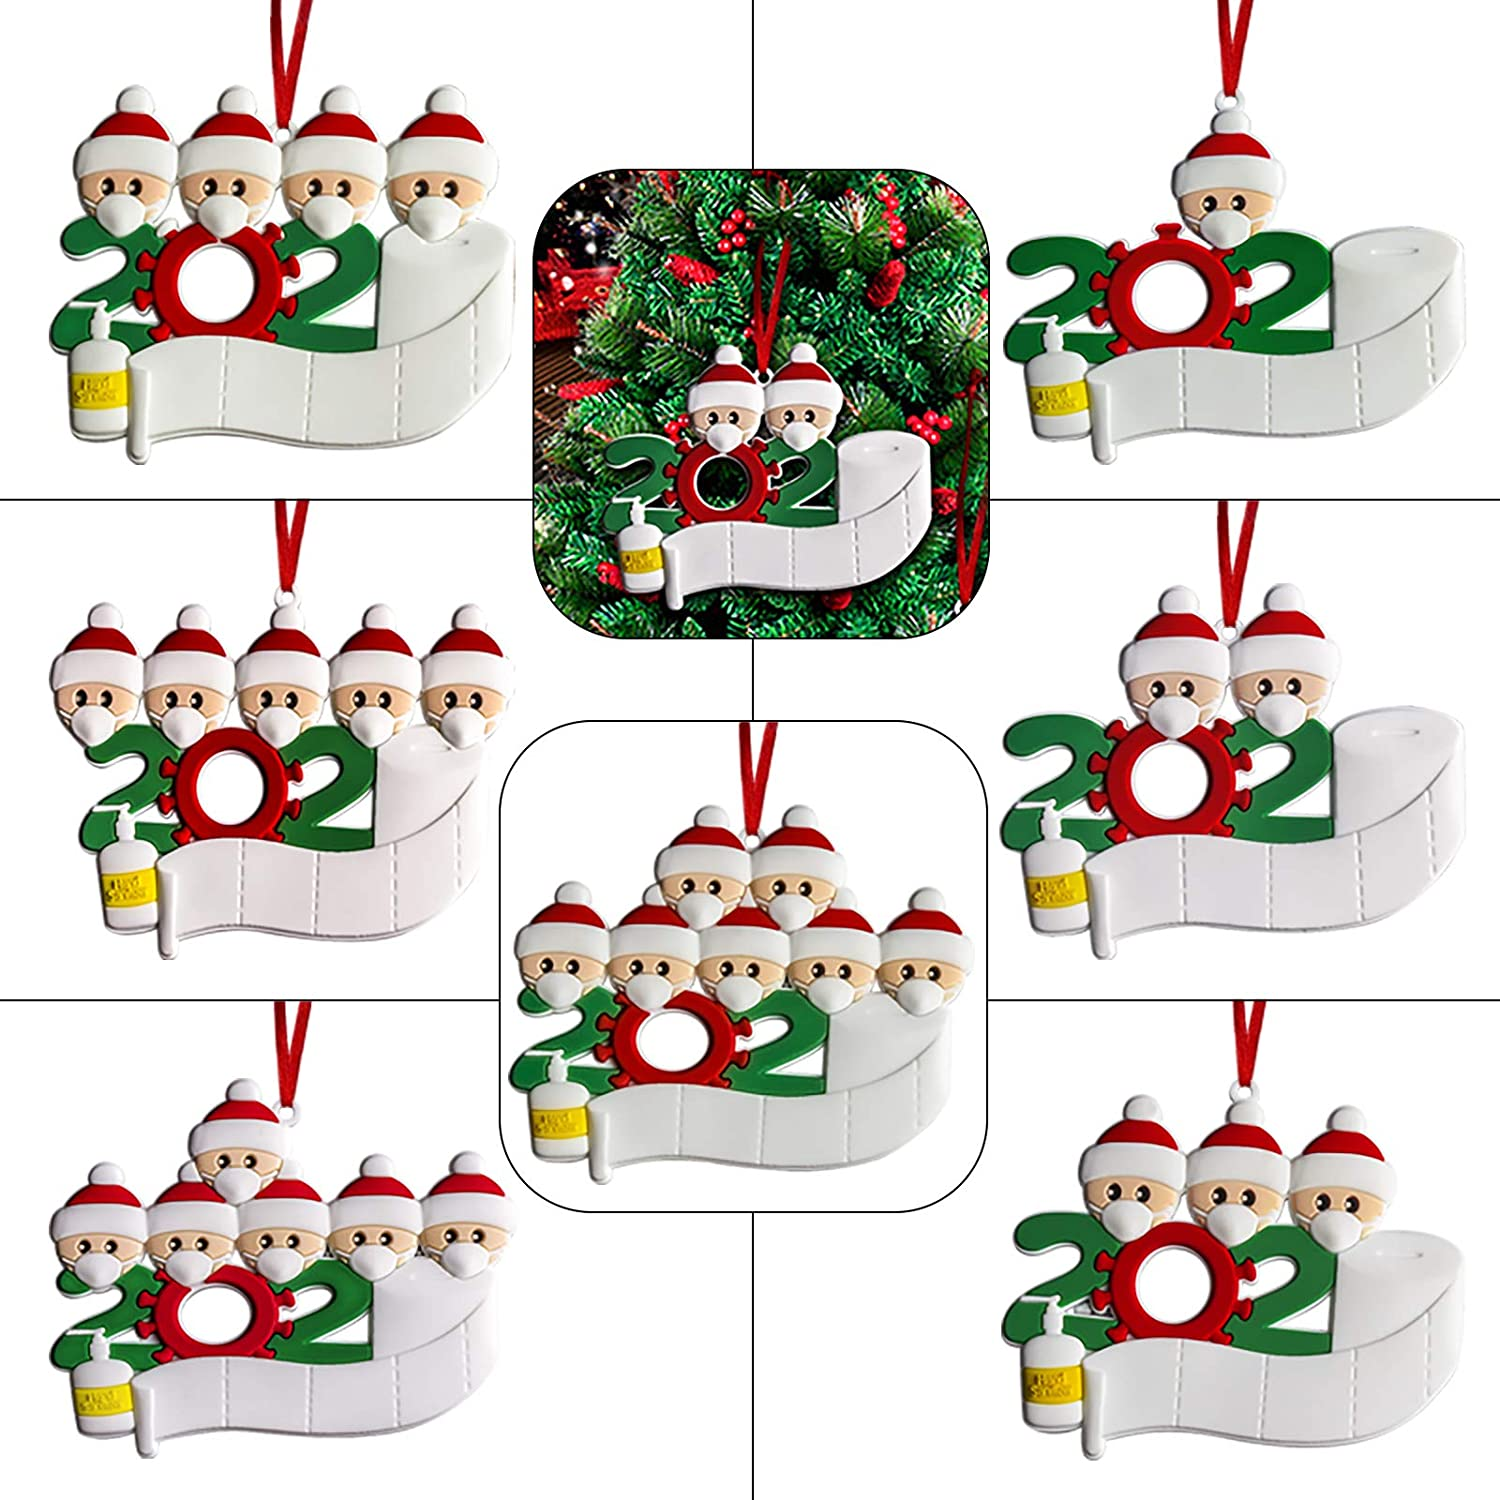 vkbuou Christmas Ornaments 2020 Personalized Xmas Party Decorations Customized Quarantine Survivor Family Christmas Tree Decorating Kits Creative Gifts Fit 2 Family Members